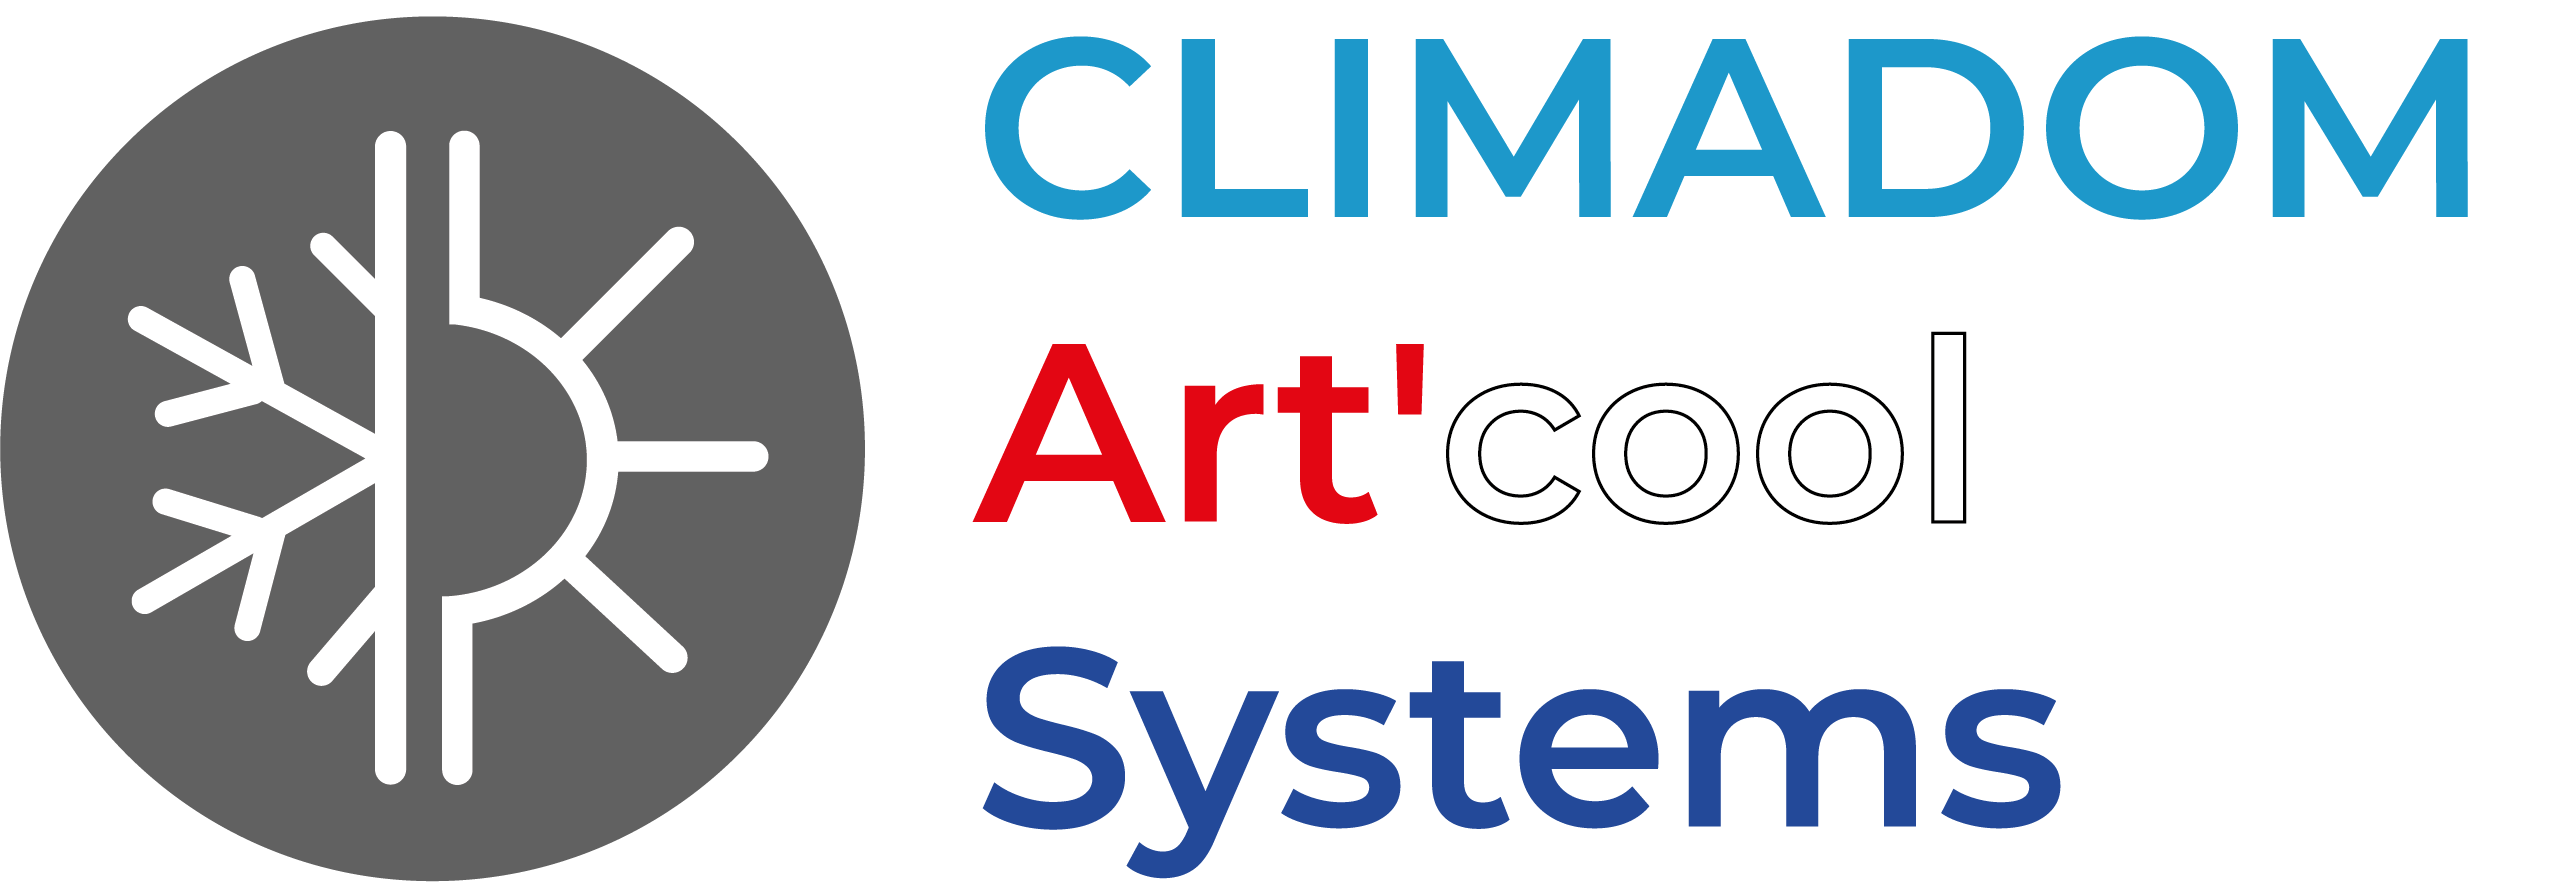 Logo Climadom Art'cool System